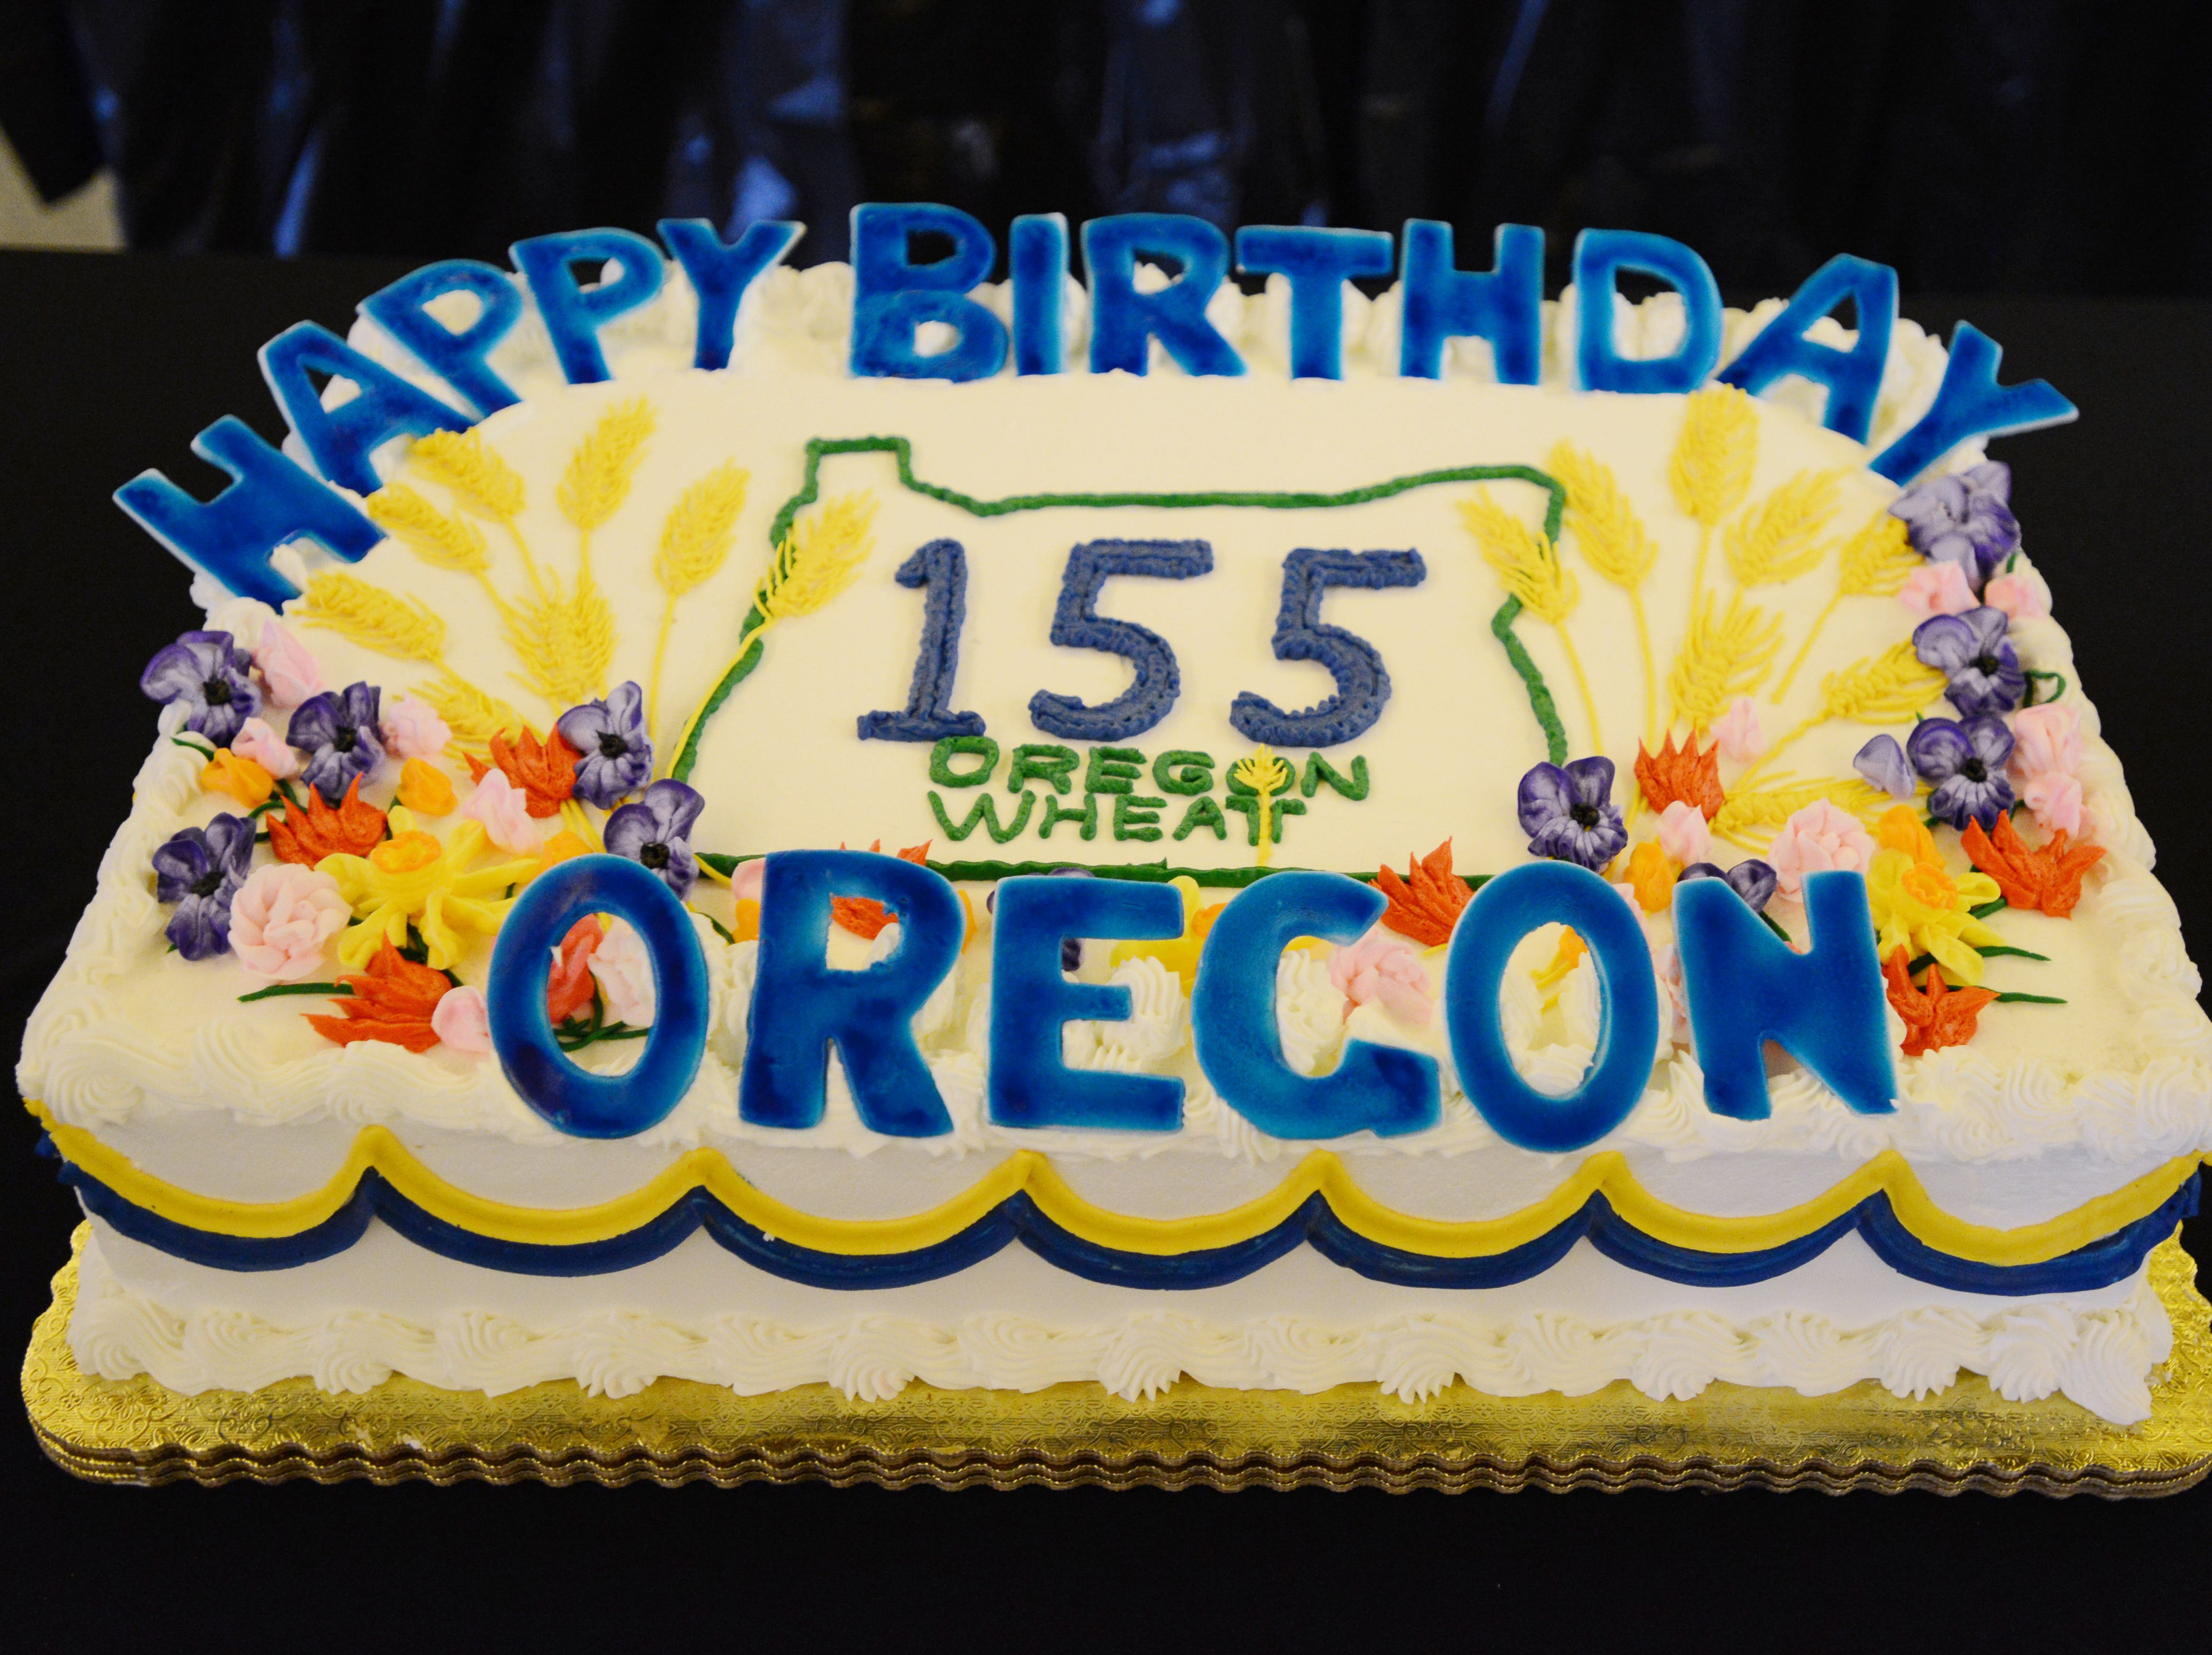 Cake is served for Oregon's 155th birthday celebration at the State Capitol on Feb. 14, 2014.